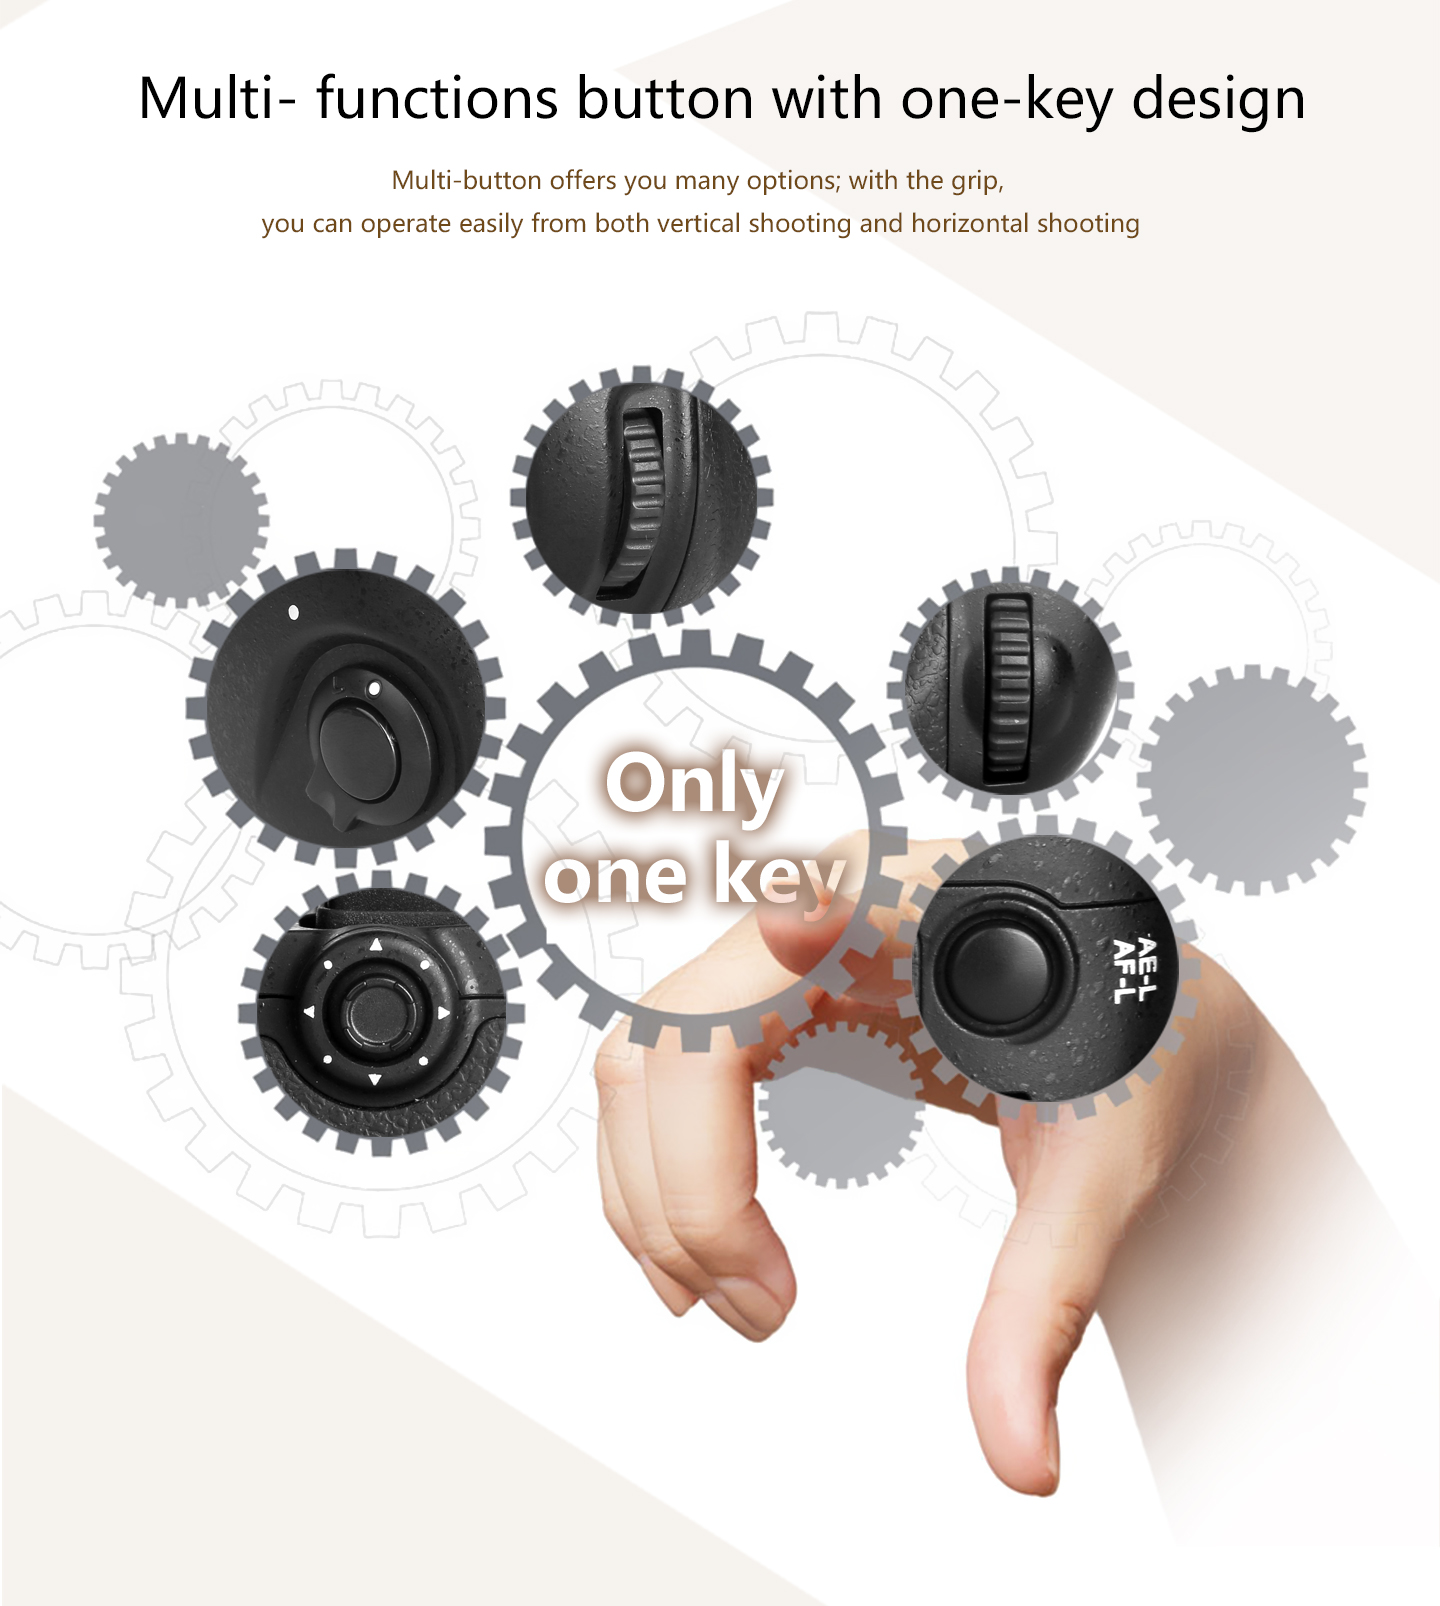 Multi-functions button with one-key design